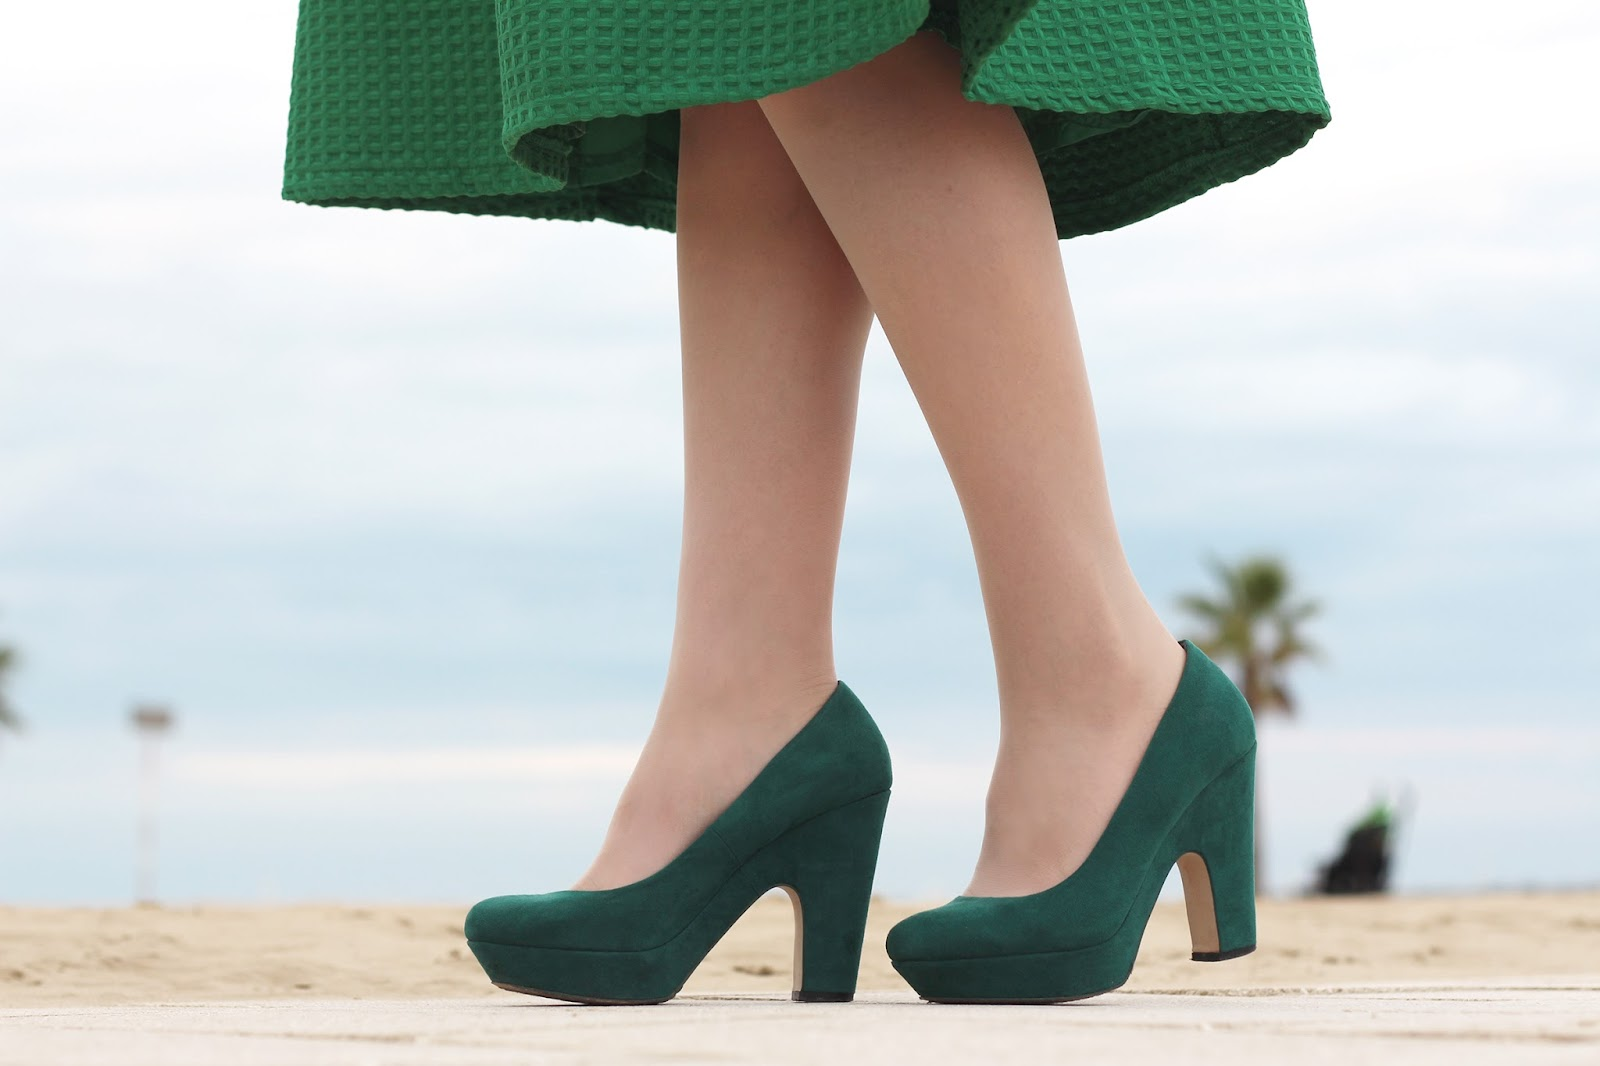 green midi skirt heels bershka pumps shoes